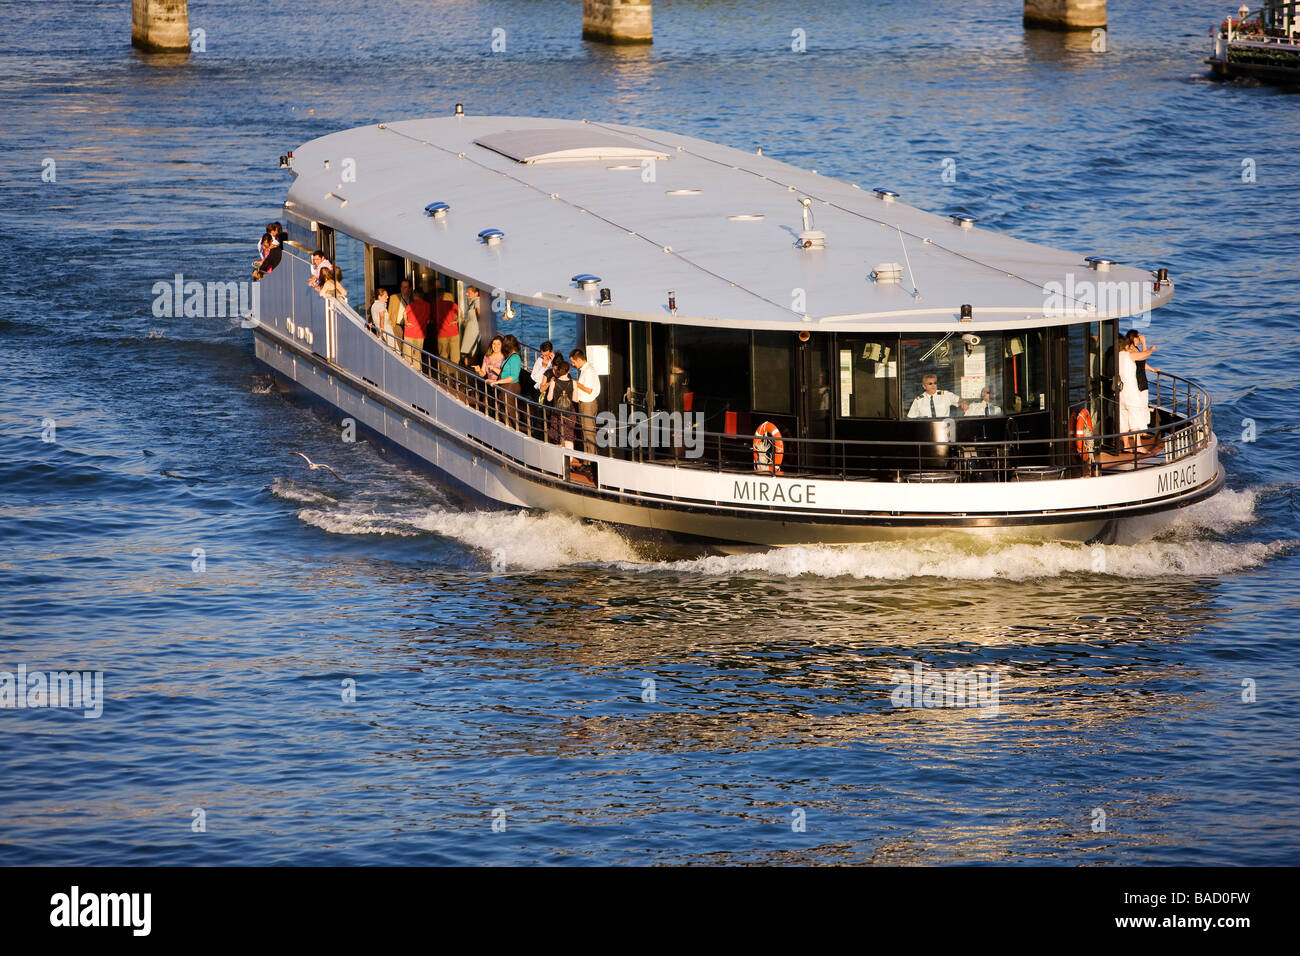 france paris mirage riverboat bateau mouche on the river seine stock photo 23642749 alamy. Black Bedroom Furniture Sets. Home Design Ideas